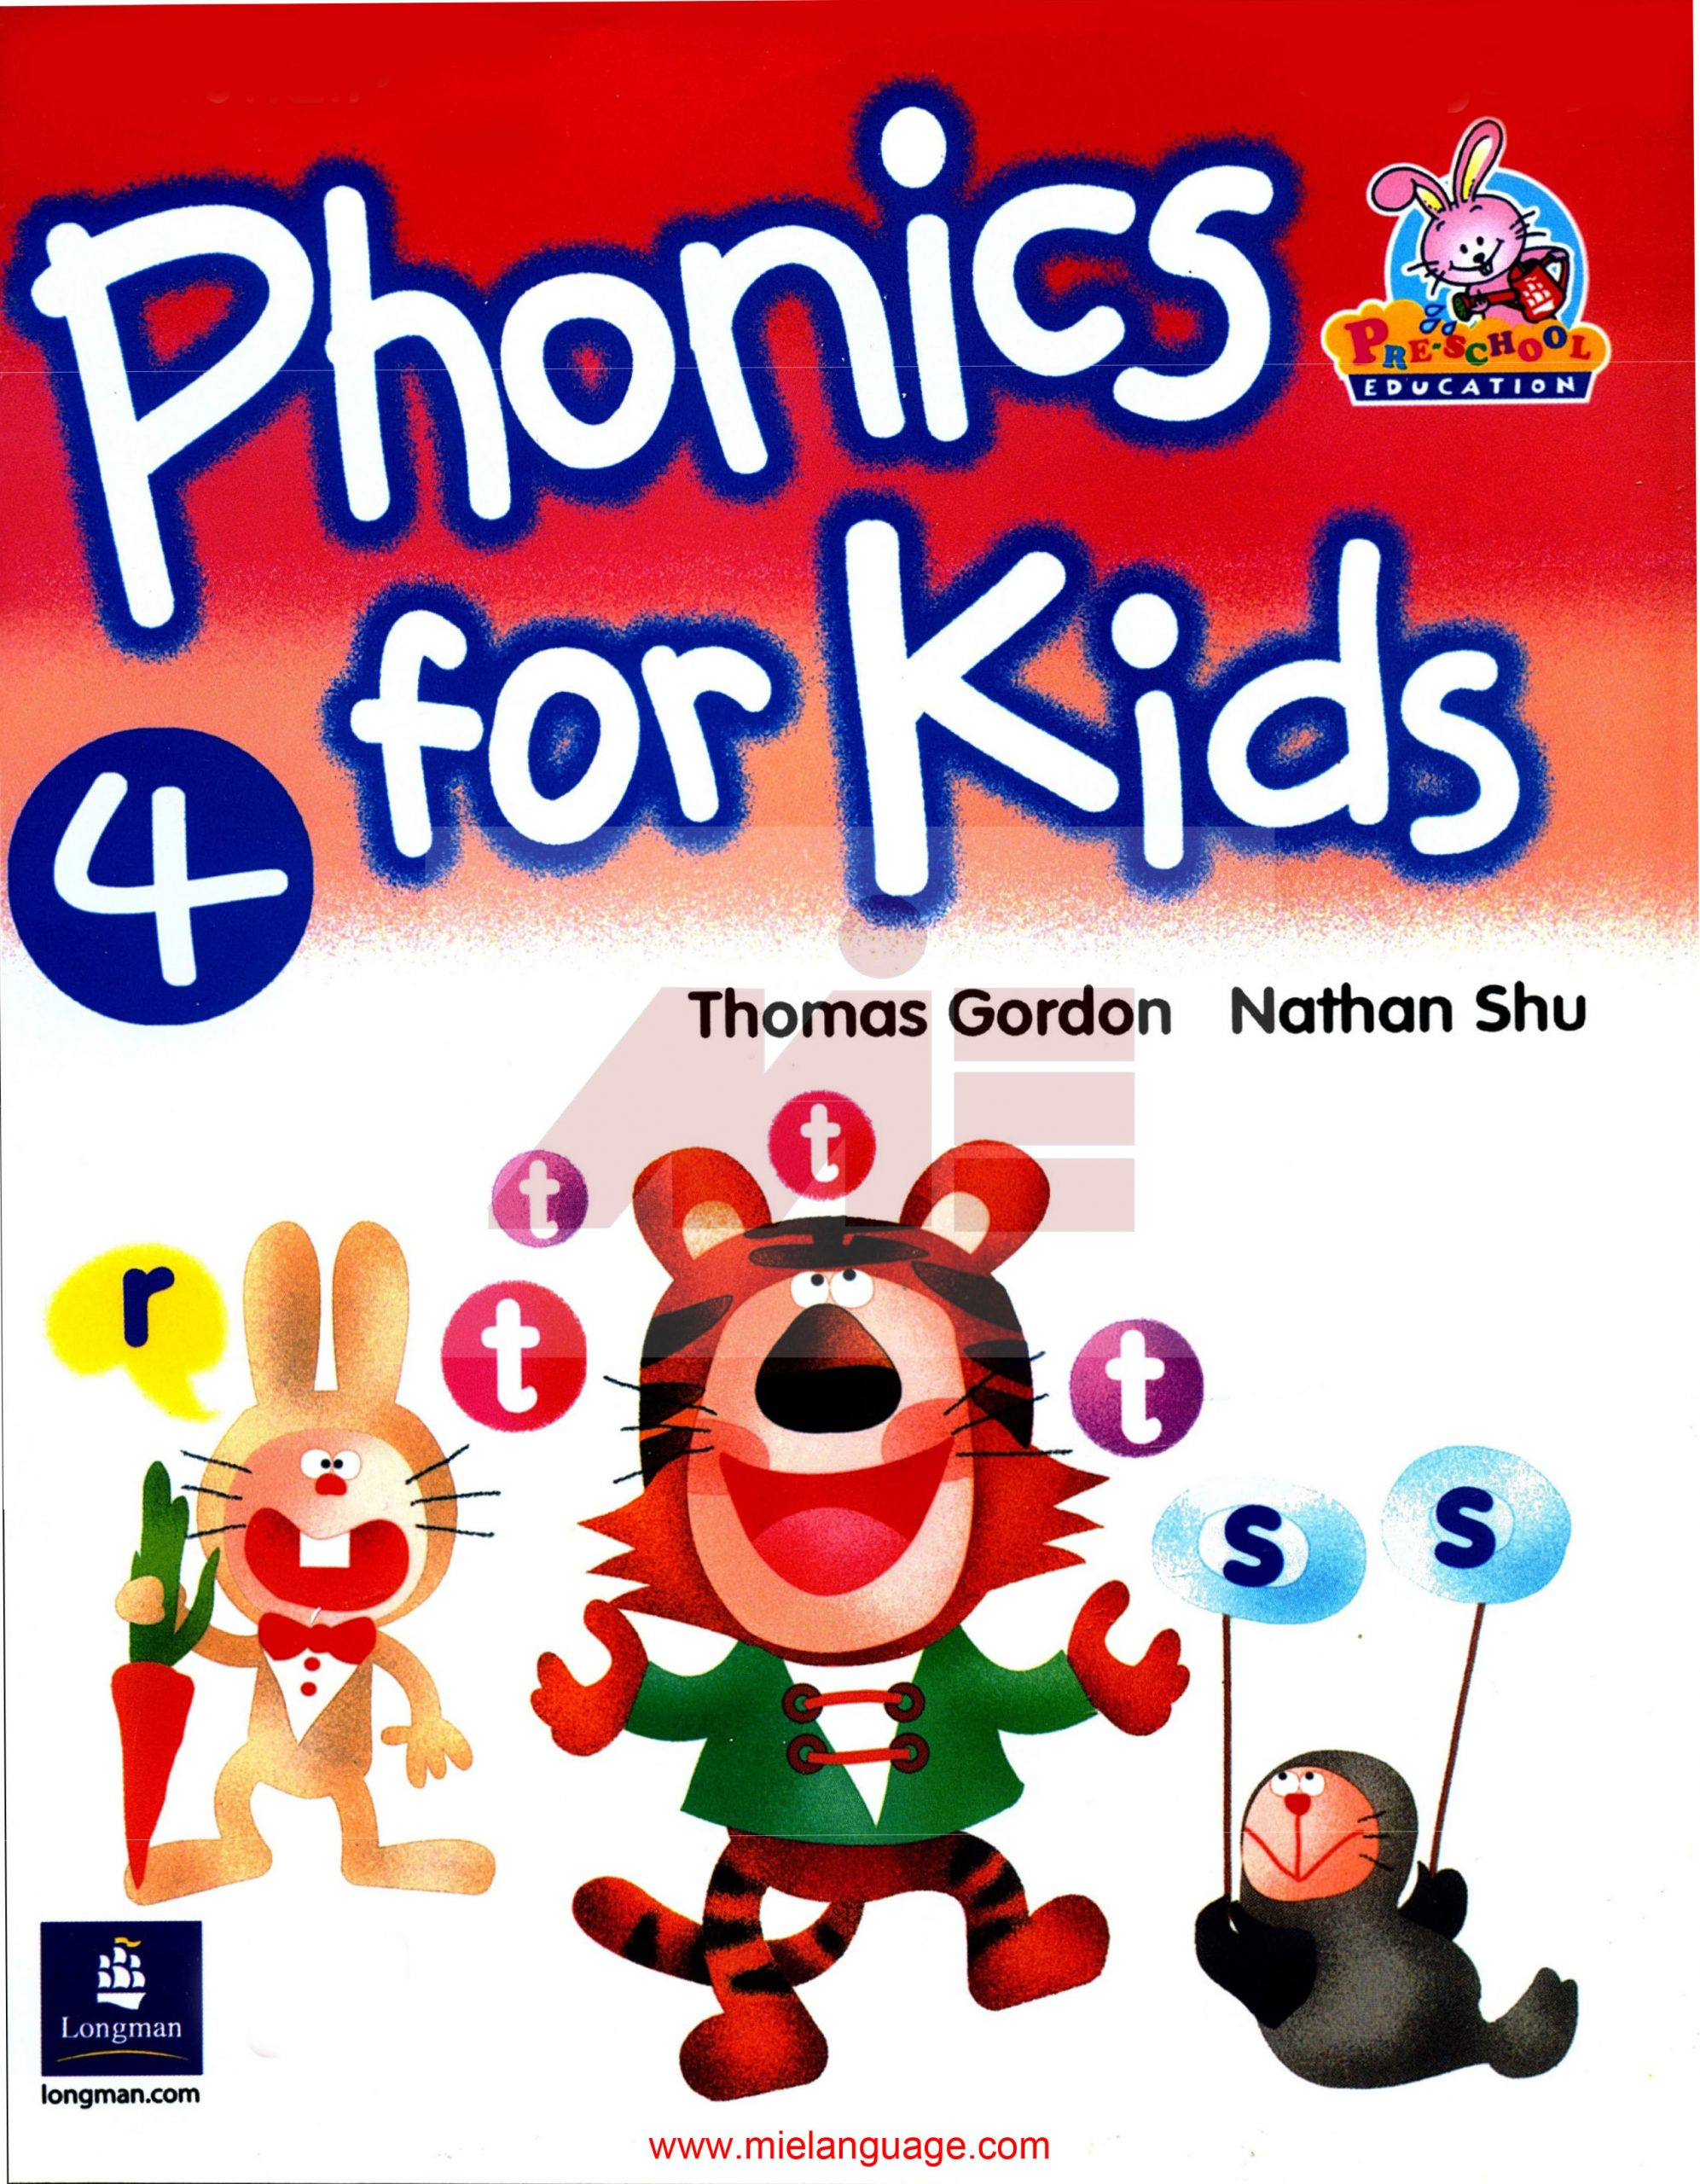 Phonics for Kids 4 Book 1 scaled